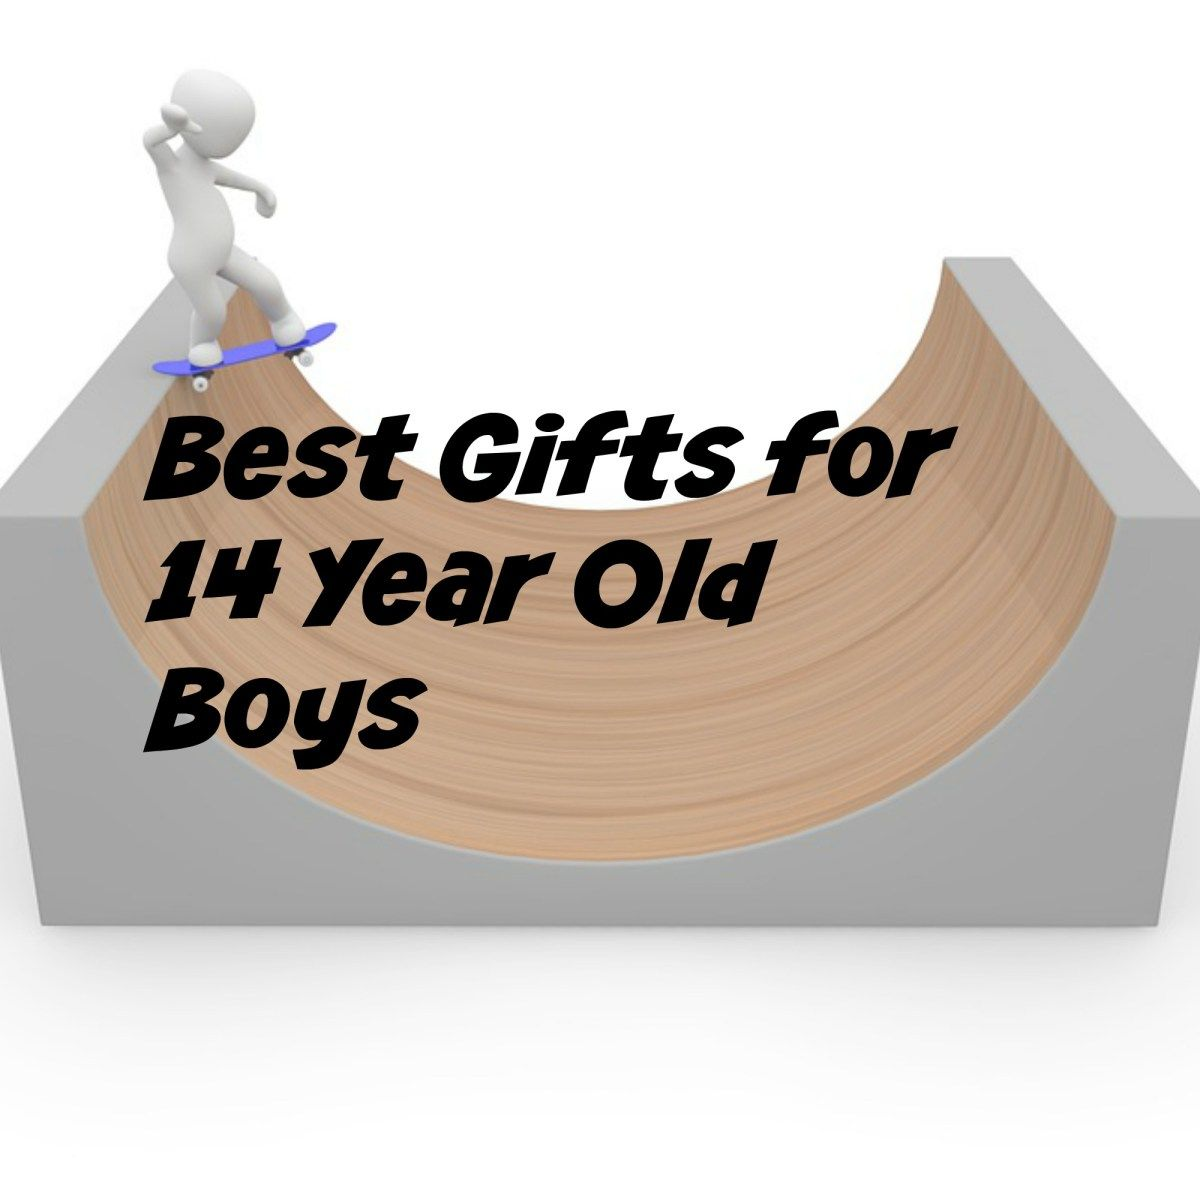 Best gifts for 14 year old boys birthdays and christmas